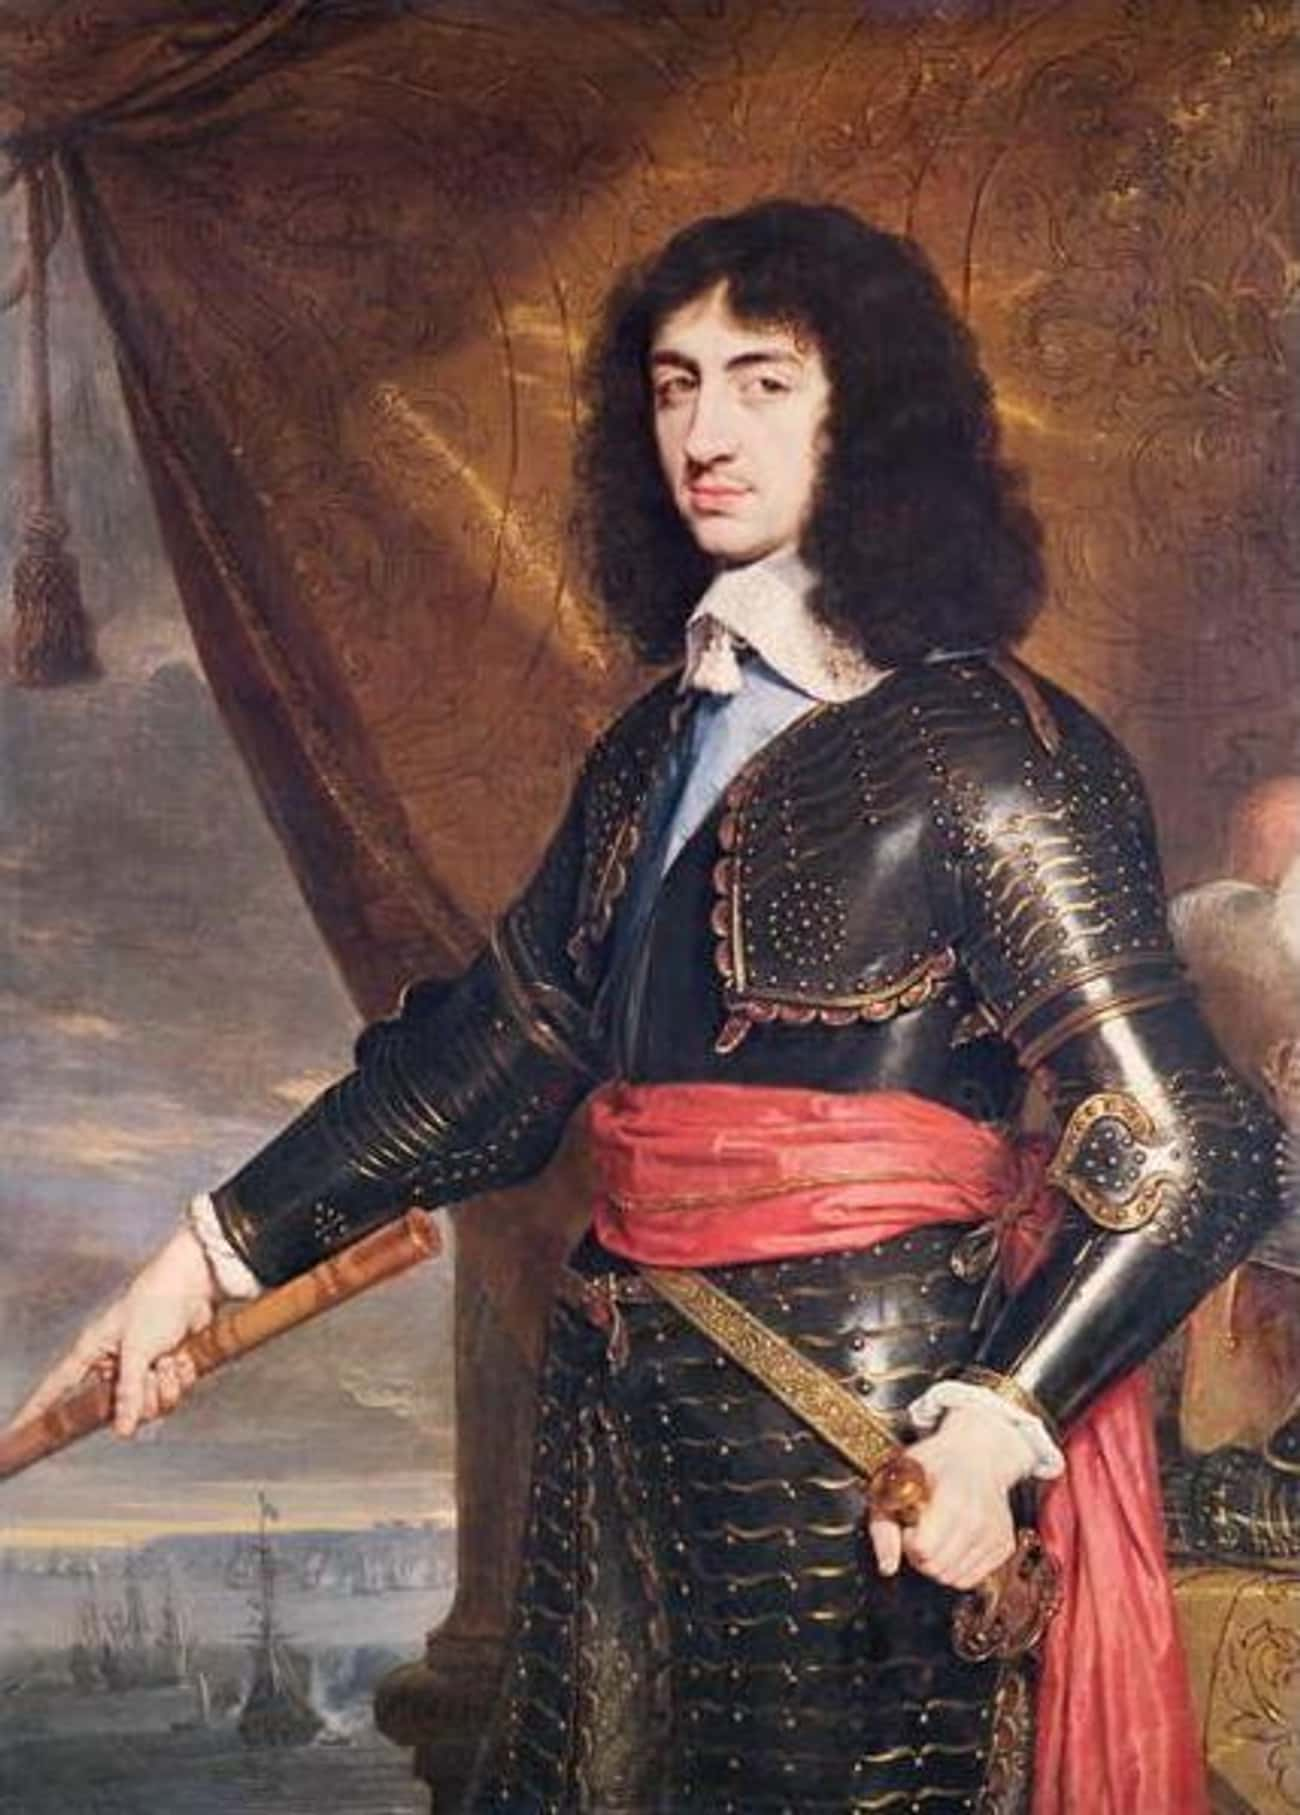 King Charles II Collected Mumm is listed (or ranked) 1 on the list The Weirdest Things Historical Royals Have Collected